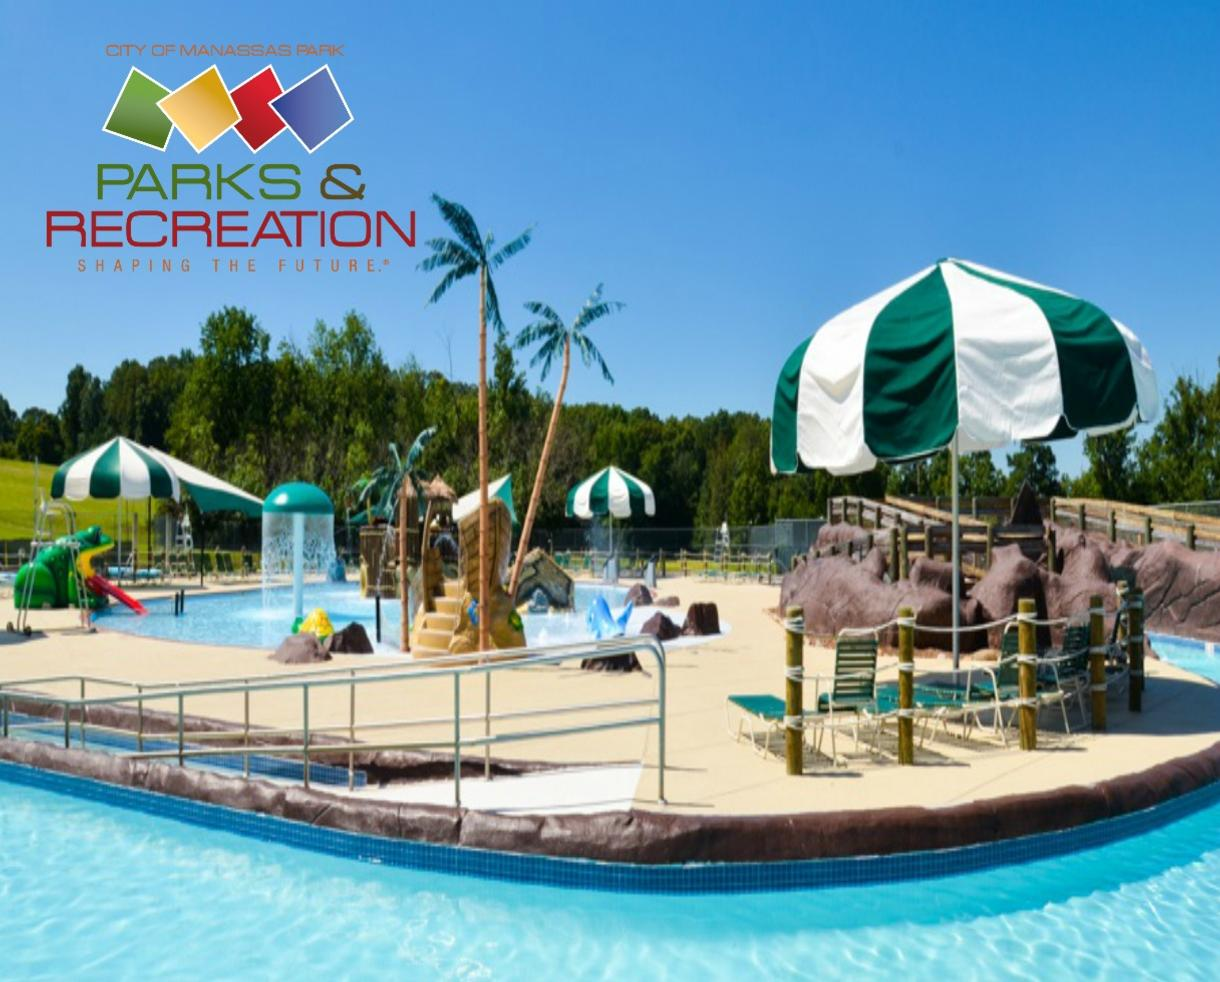 NOW VALID WEEKENDS! $14 for 4-Pack of Weekend Passes to Signal Bay Water Park thru Sept. 4 - Manassas, VA (57% Off)